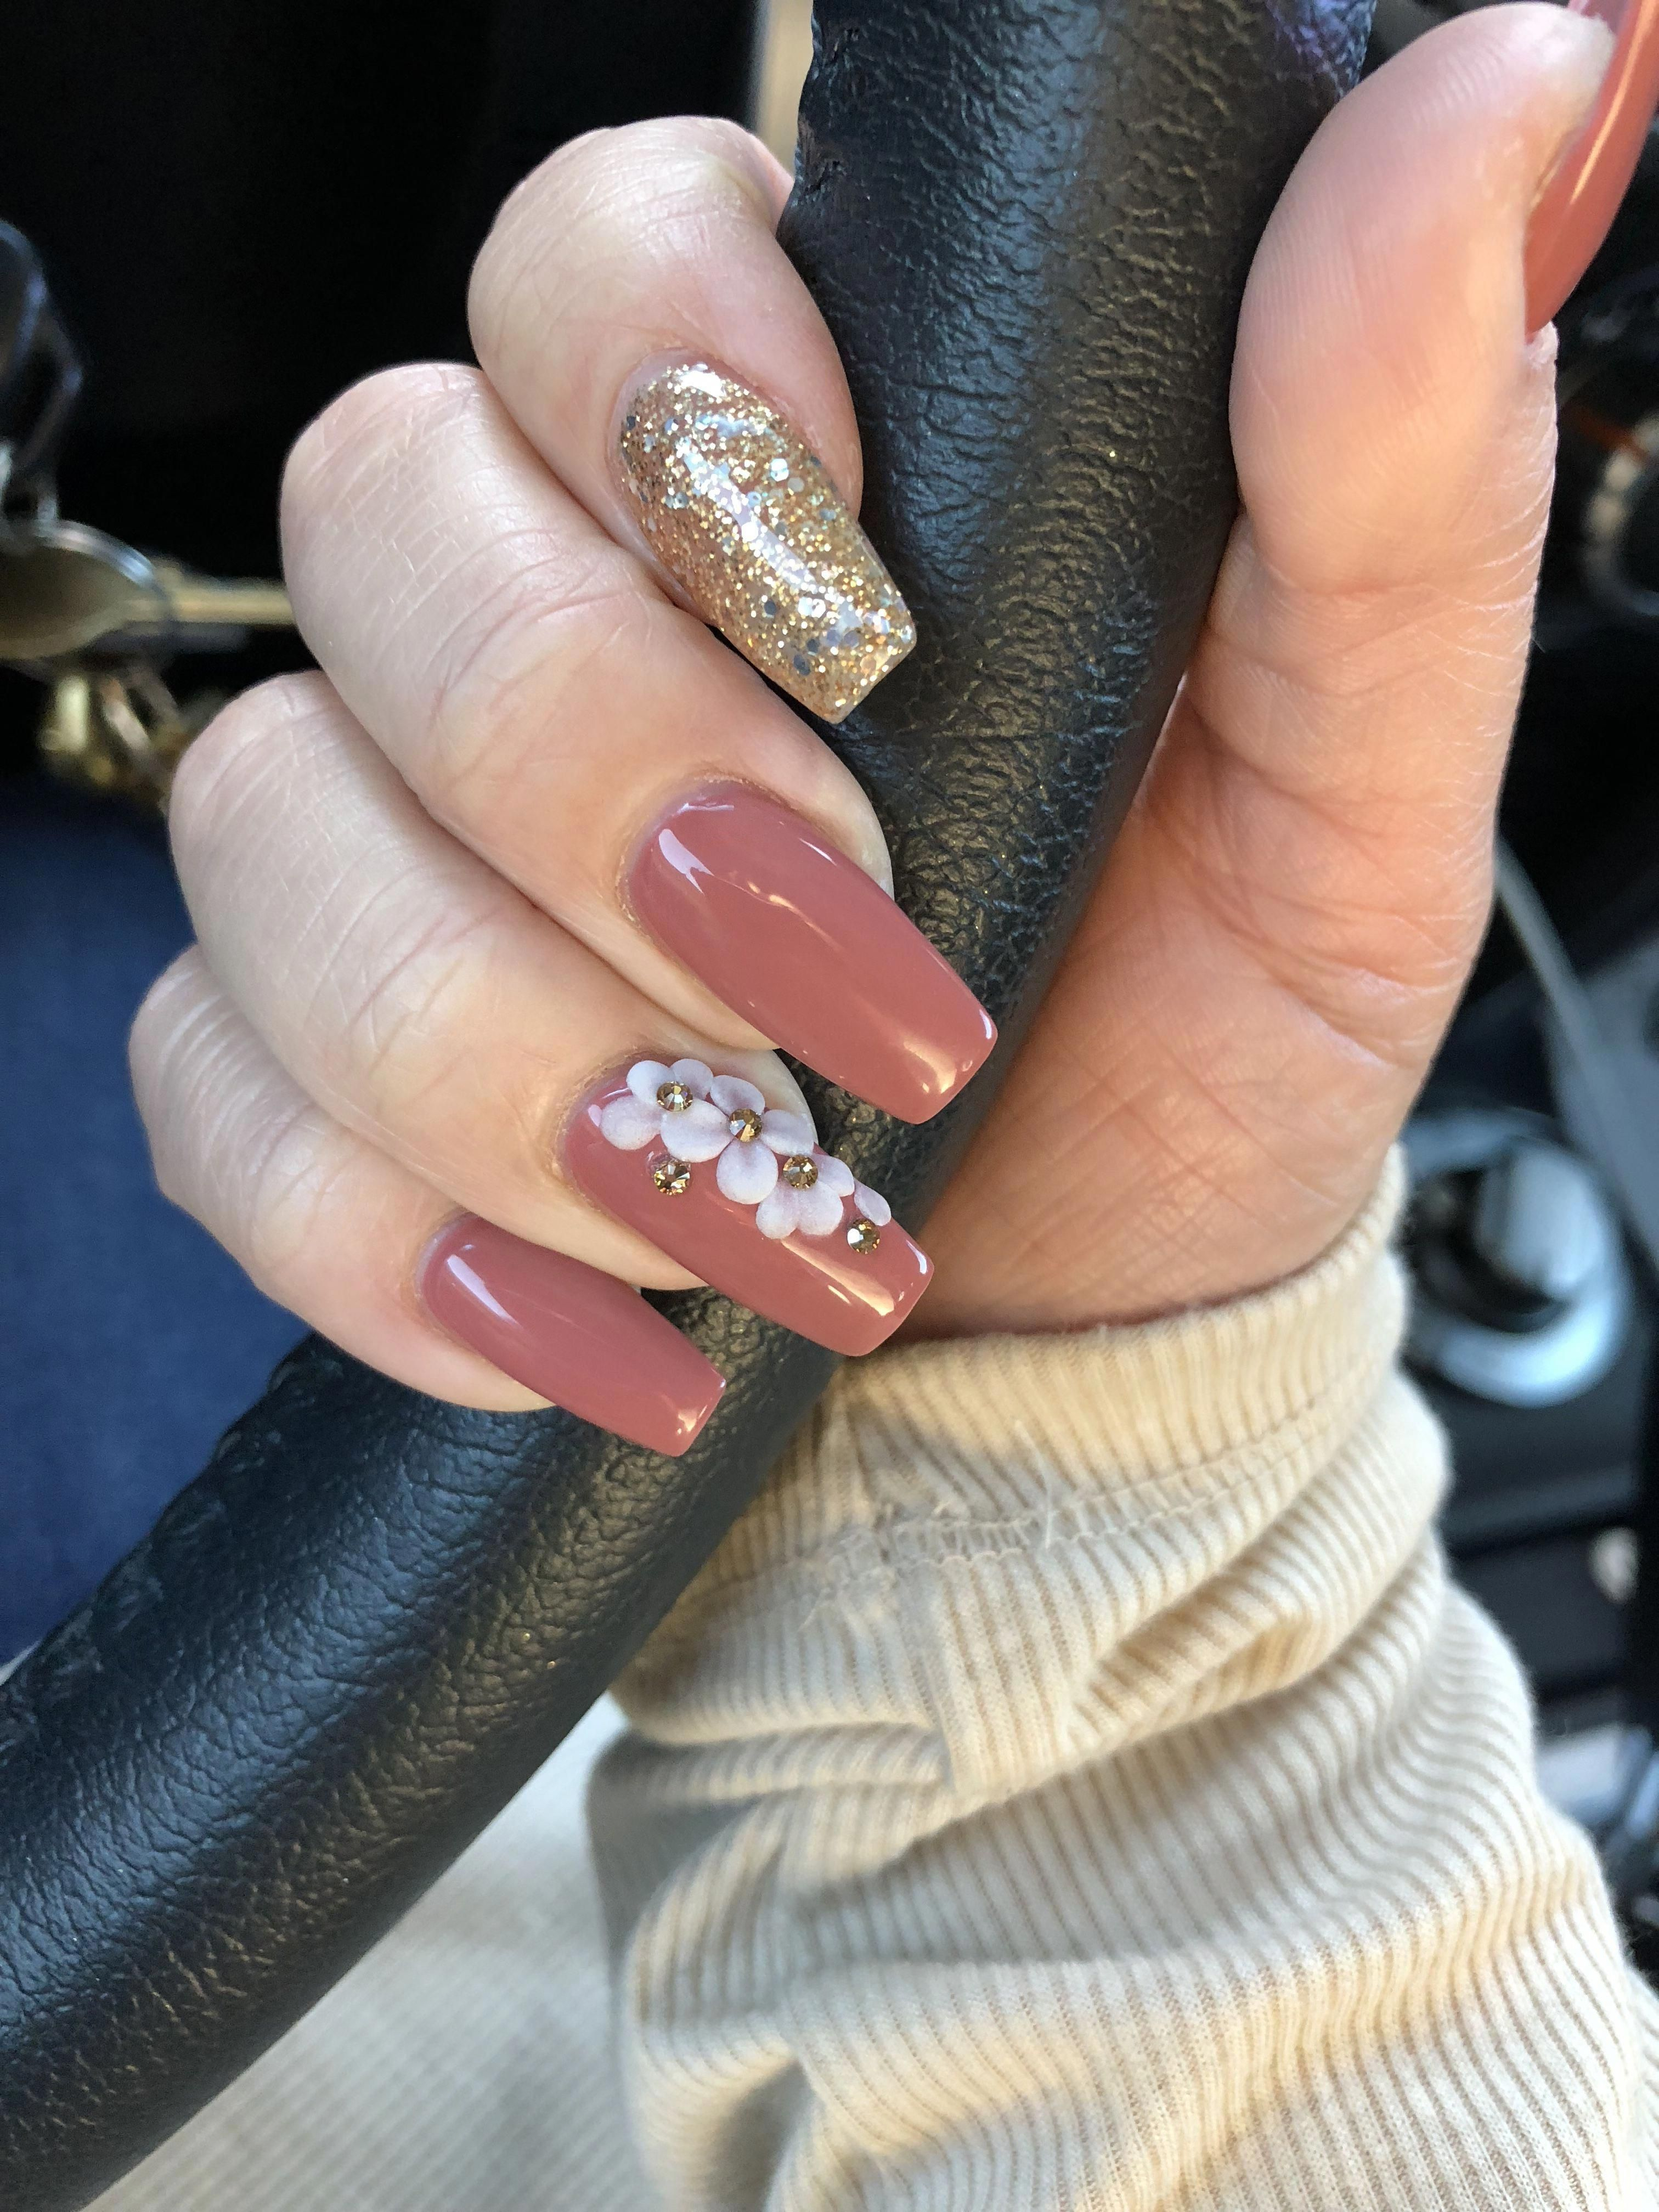 Coffin Nails With Acrylic Flowers Dnd Redwood City And Dnd Golden Gardens Wa Beautifulacrylicnails Acrylic Nails Coffin Pink Trendy Nails Flower Nails